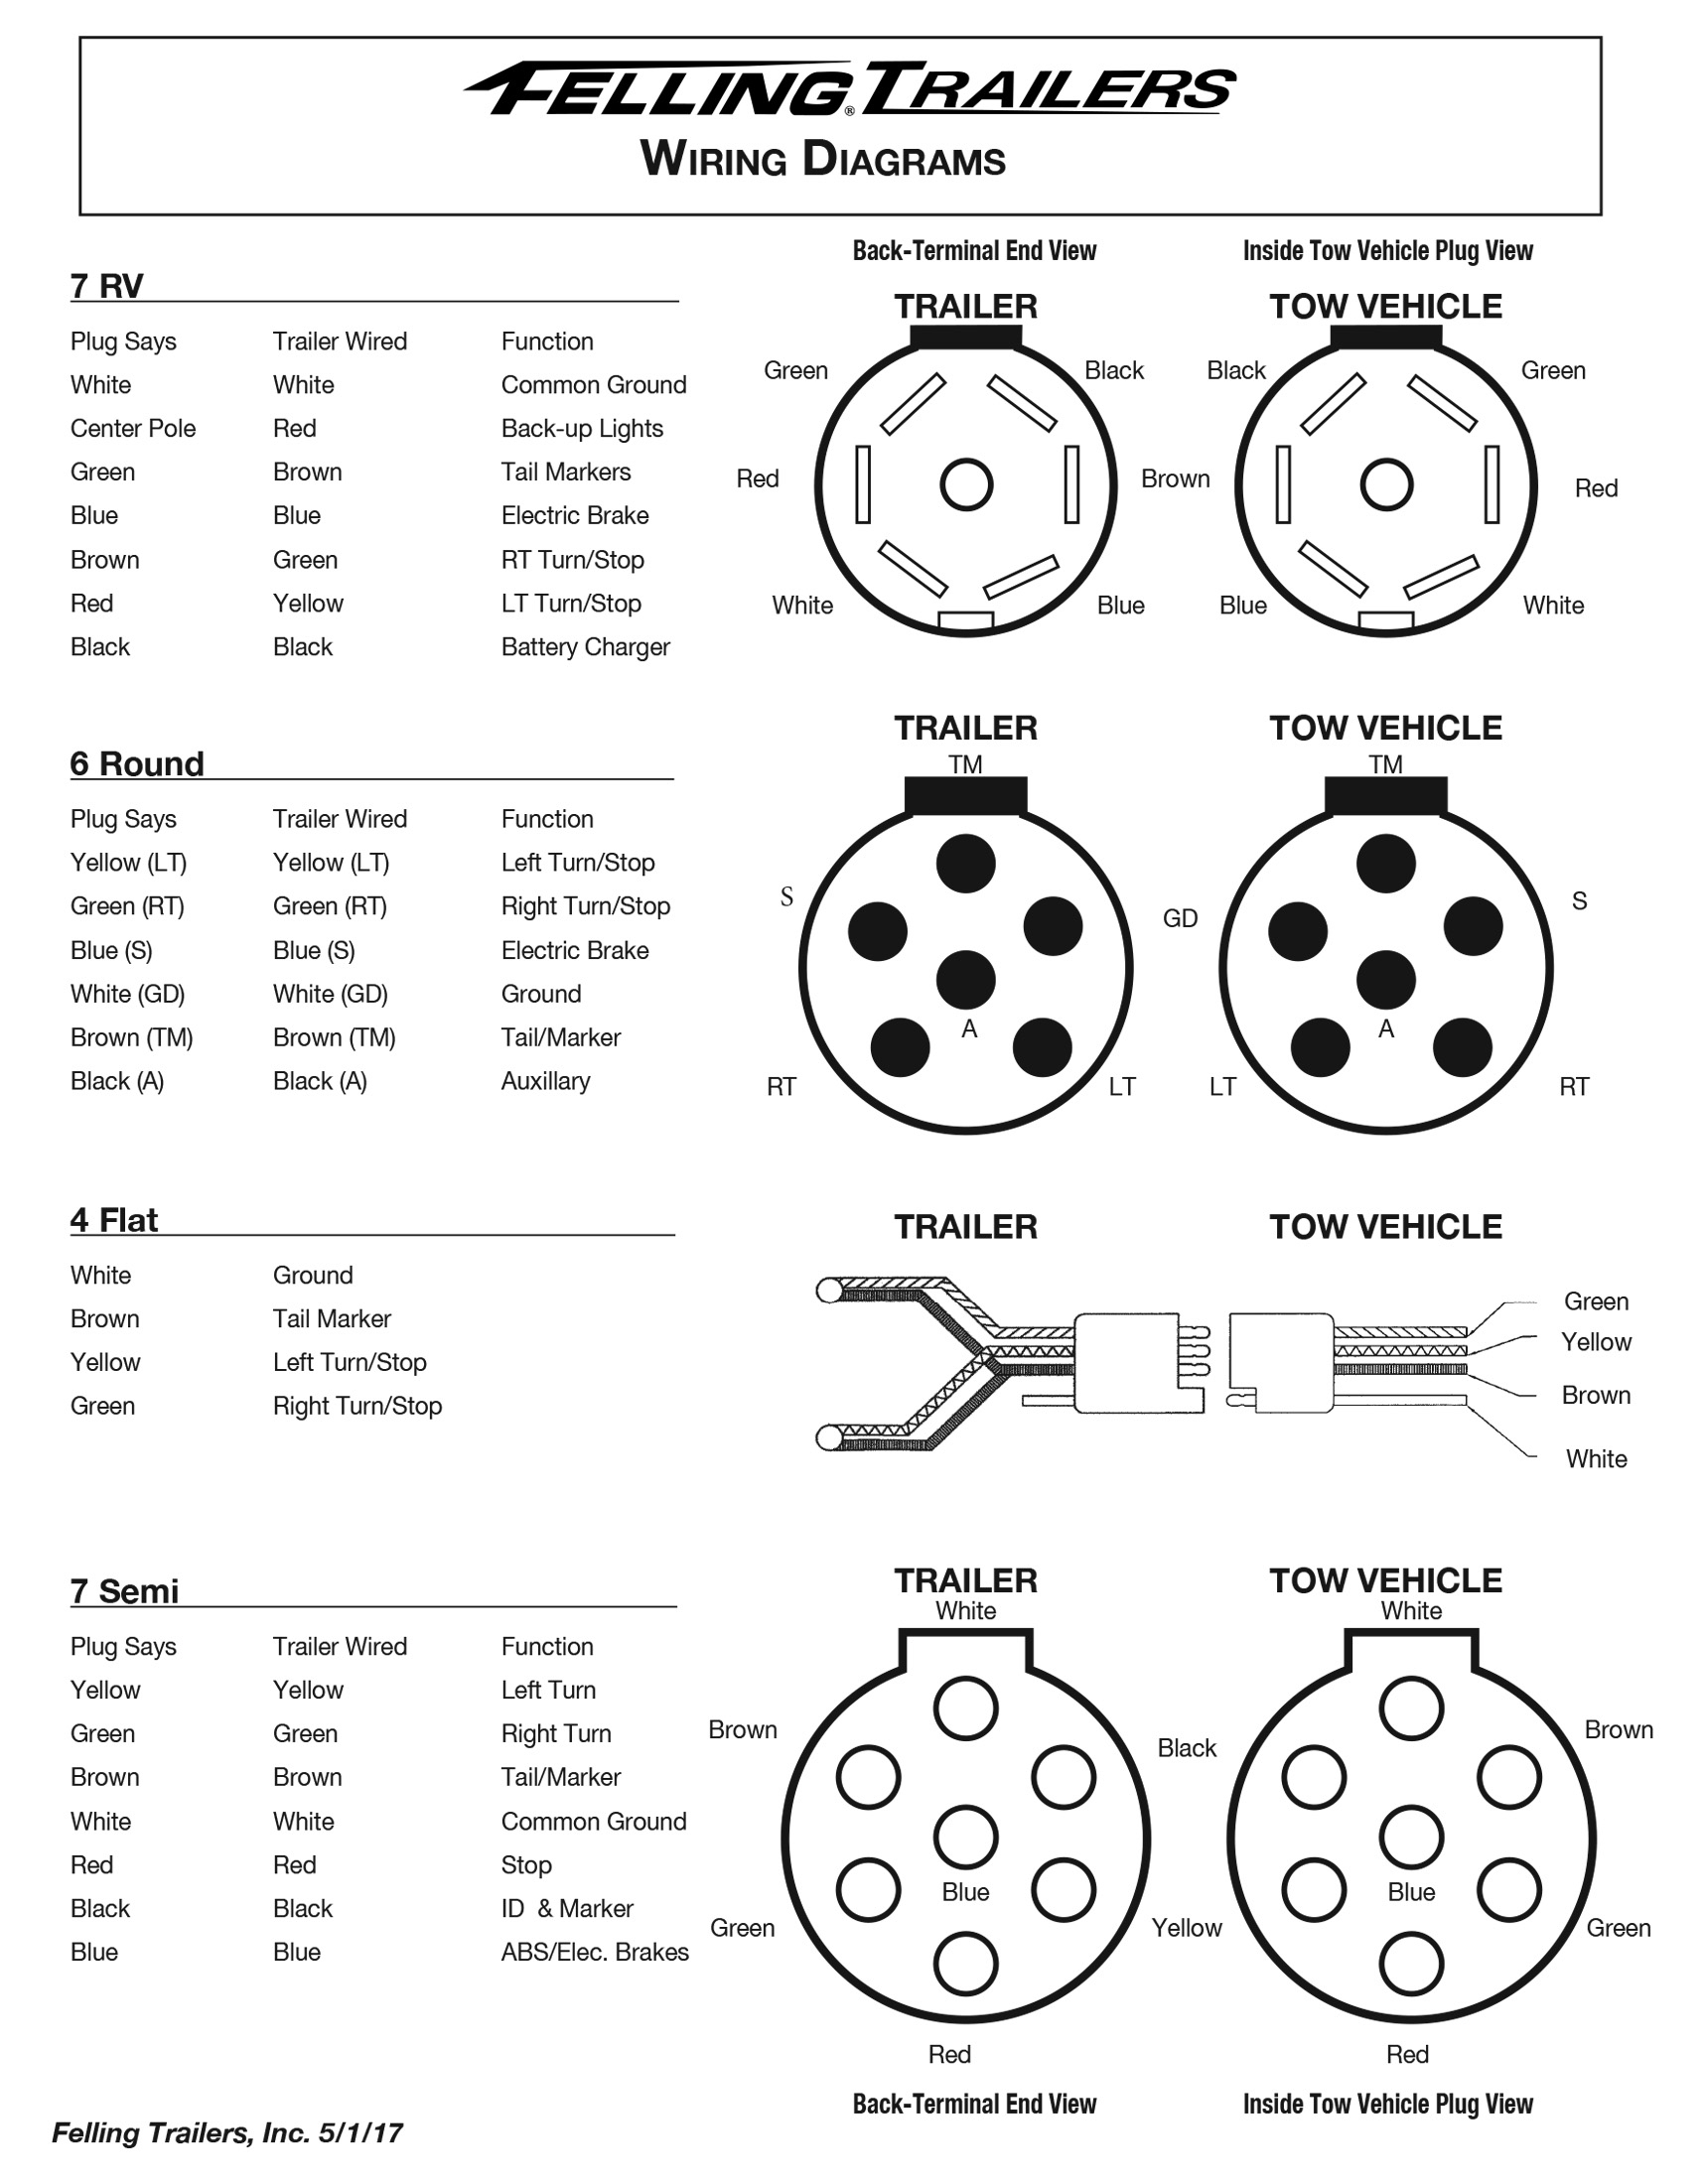 Heavy Dudy Trailer Plug Wiring Diagram | Wiring Diagram - Trailer Plug Wiring Diagram